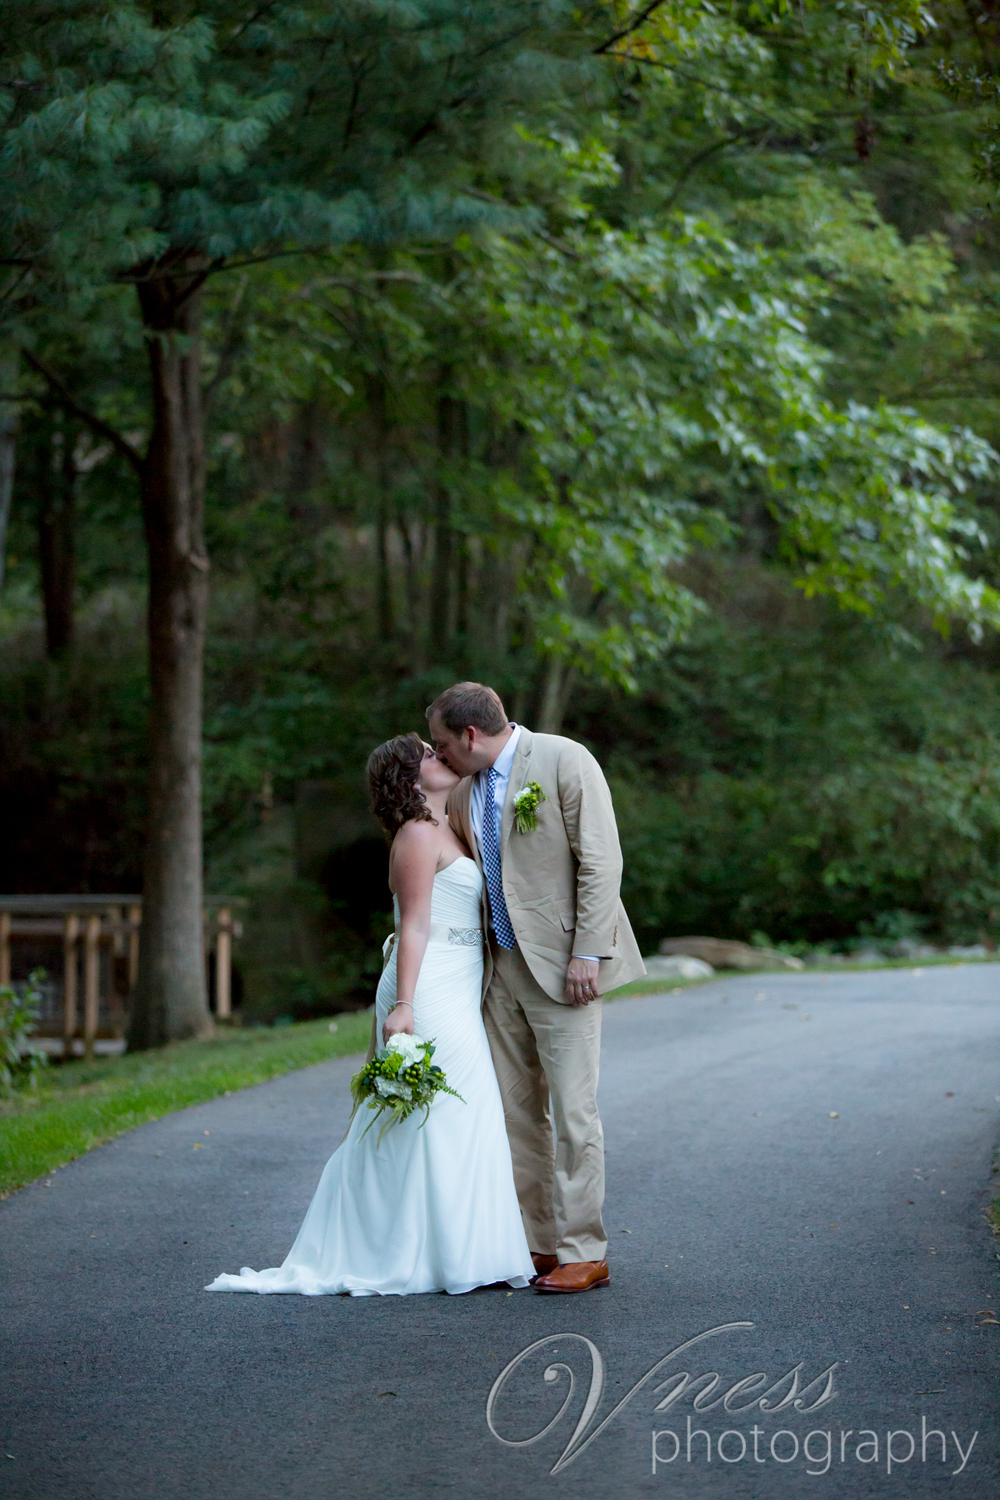 Vnessphotography_Cameron Wedding-146.jpg